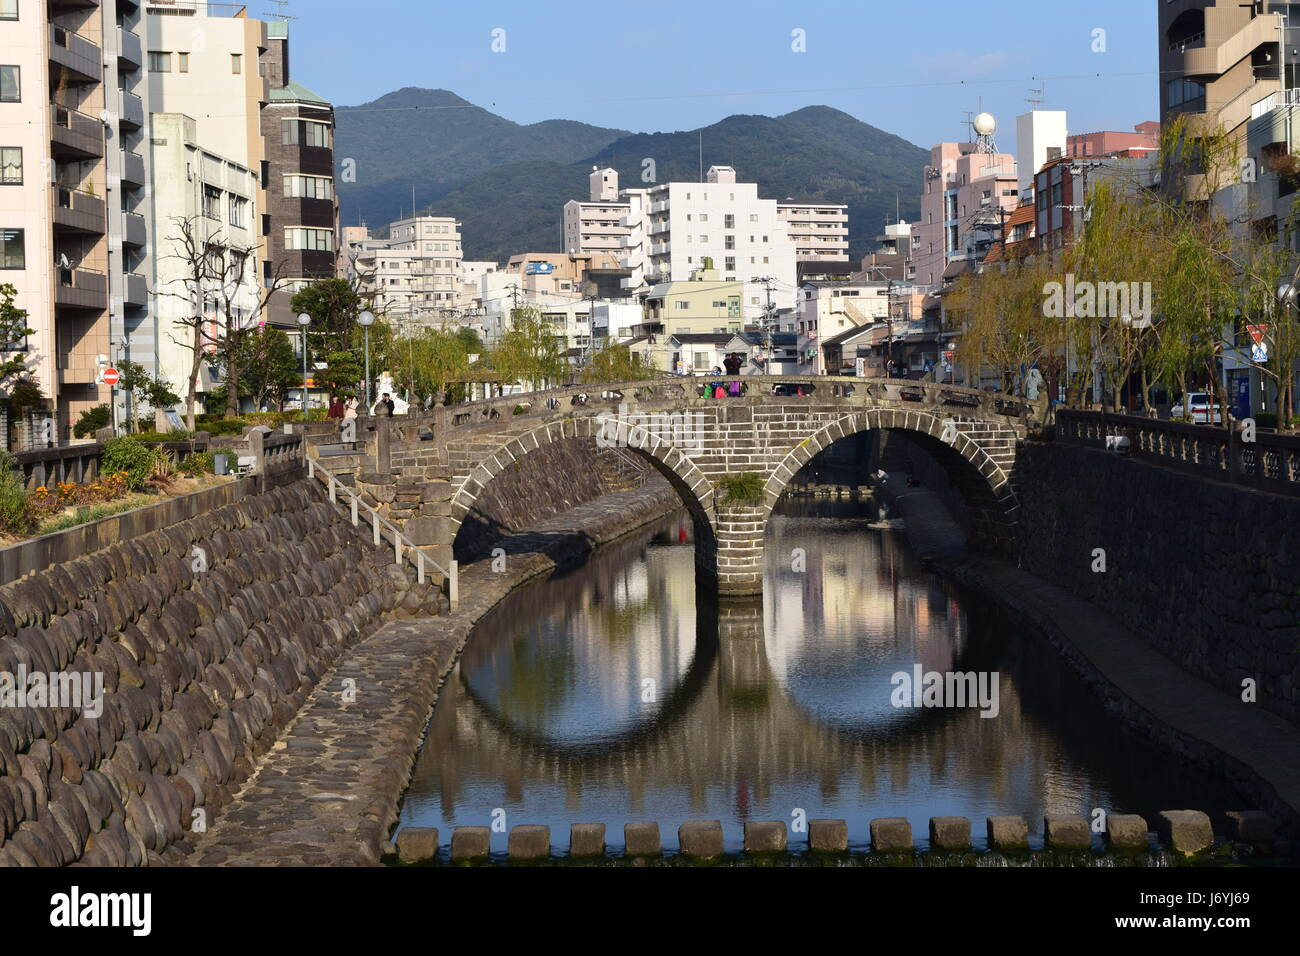 Spectacle Bridge in Nagasaki - Stock Image